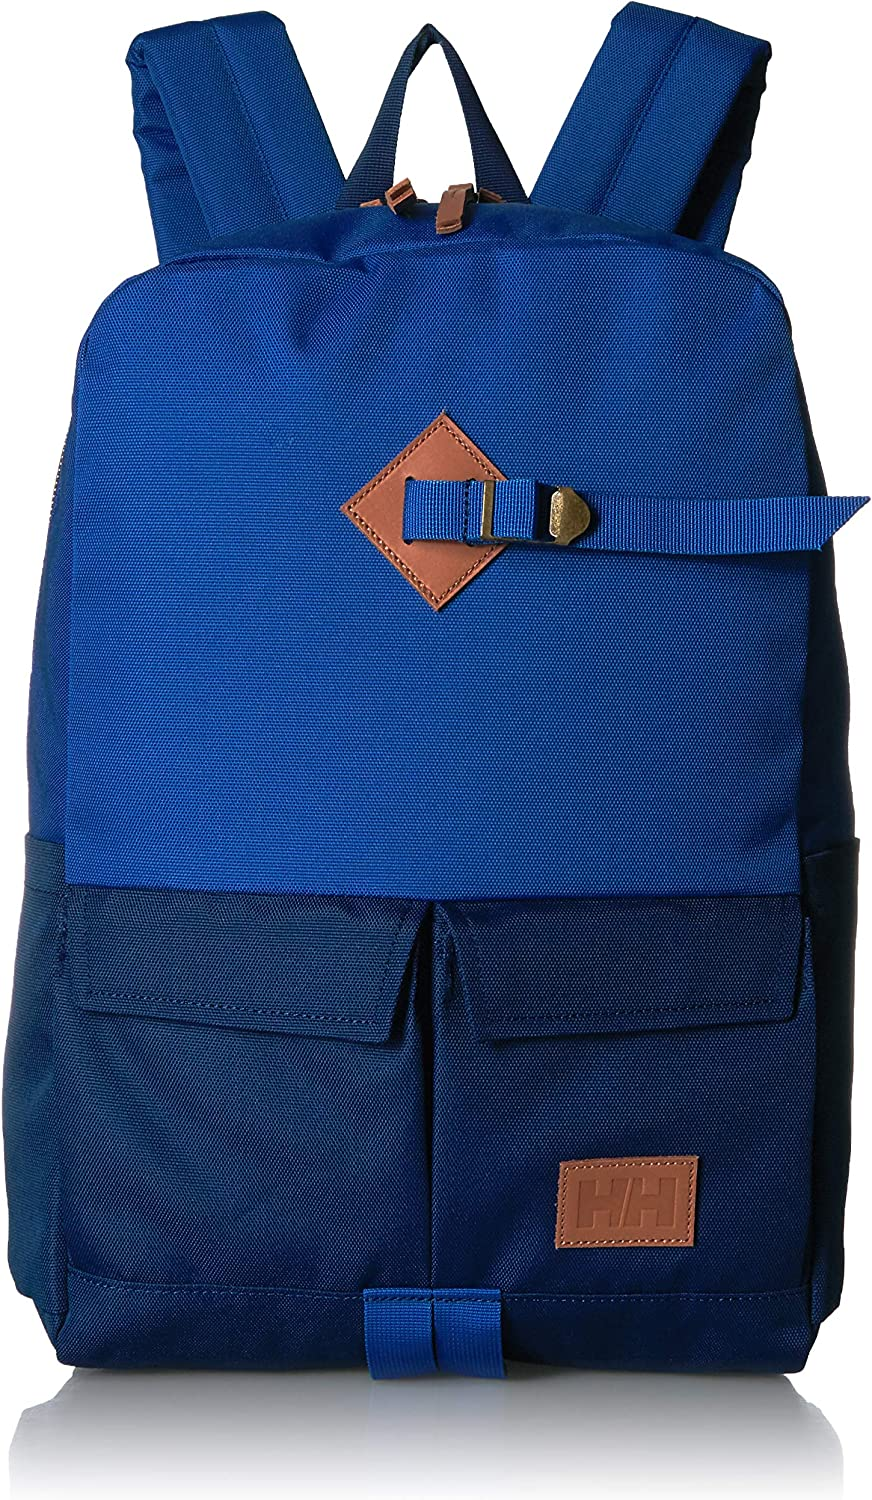 Att inaktivera Nationell bränd  Amazon.com: Helly-Hansen Men's Bergen Backpack, Catalina Blue, Standard:  Clothing